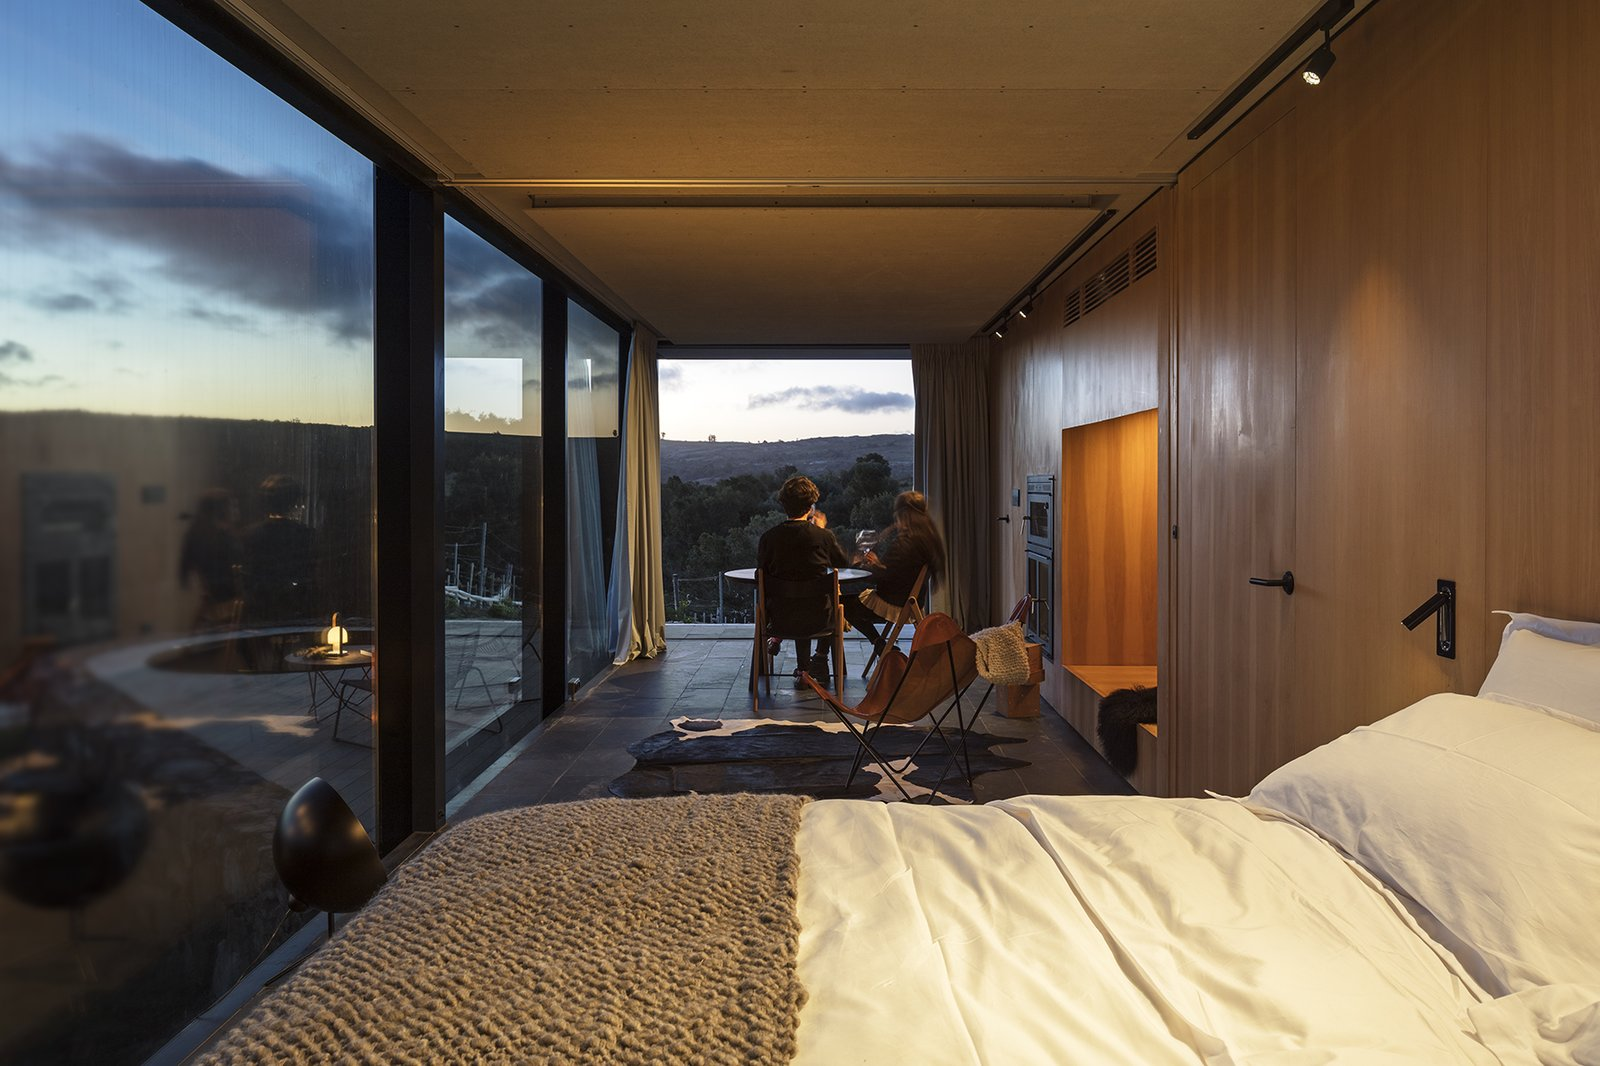 Bedroom, Bed, Slate Floor, Chair, and Track Lighting The nightscape is equally stunning.  Best Photos from A New Prefab Hotel in Uruguay Seems to Melt Into the Landscape